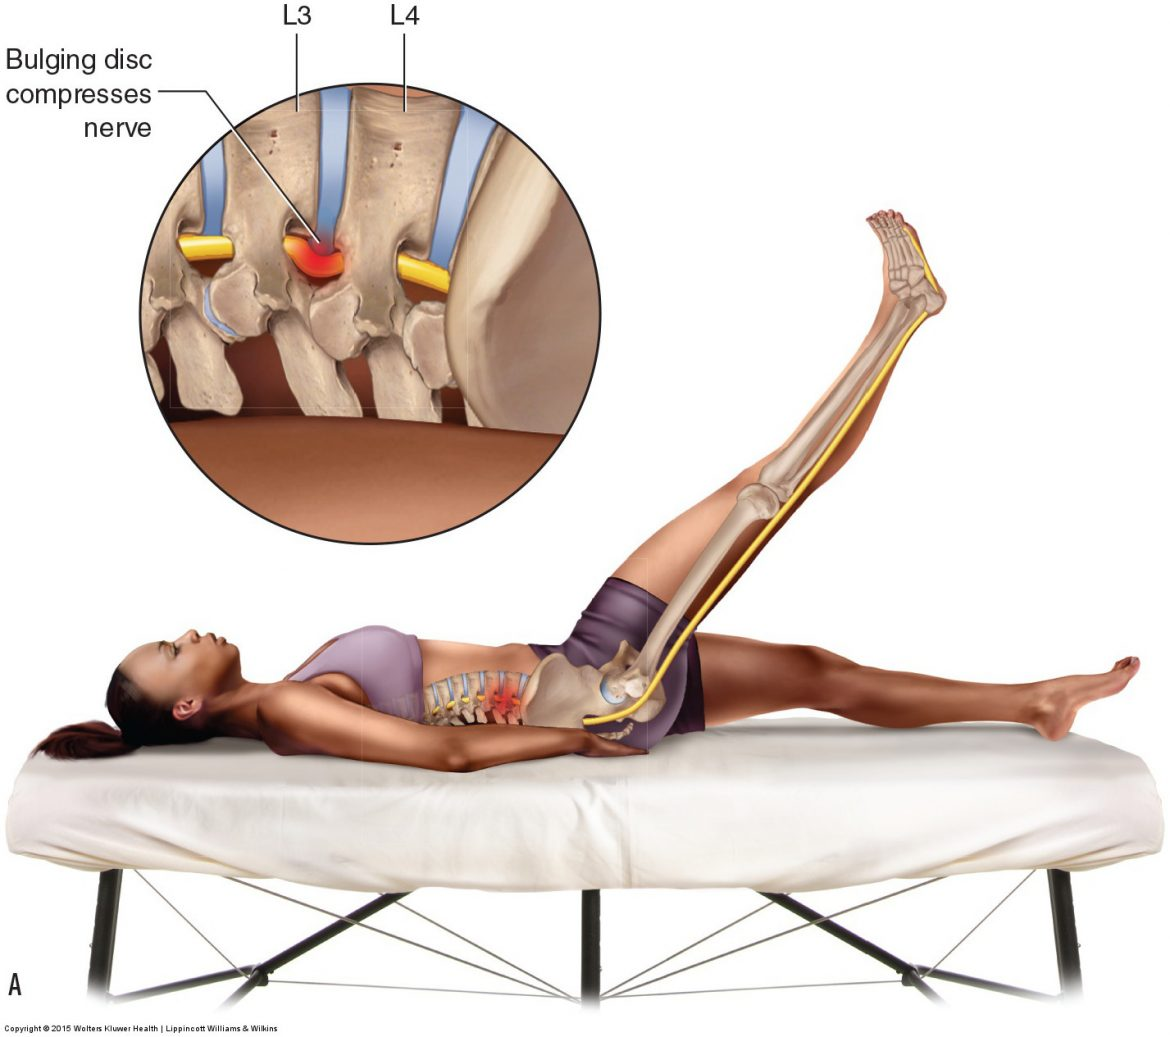 Active straight leg raise assessment for a pathologic disc